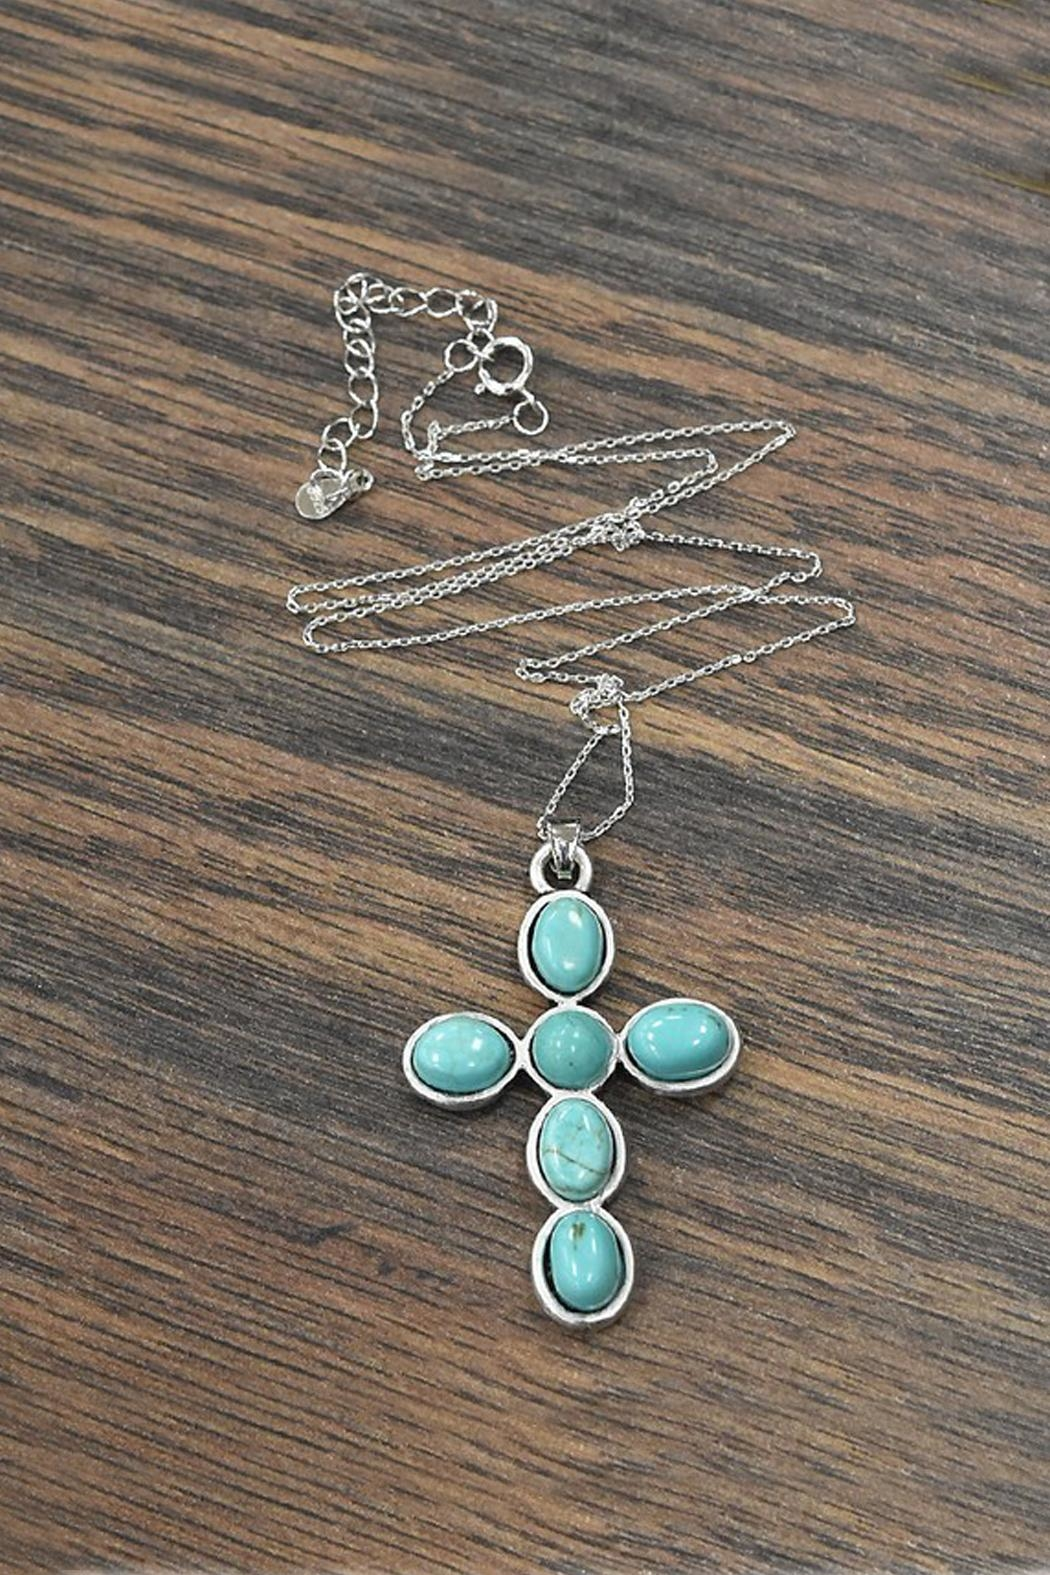 JChronicles Sterling-Silver-Chain-Necklace With Cross-Natural-Turquoise-Pendant - Main Image